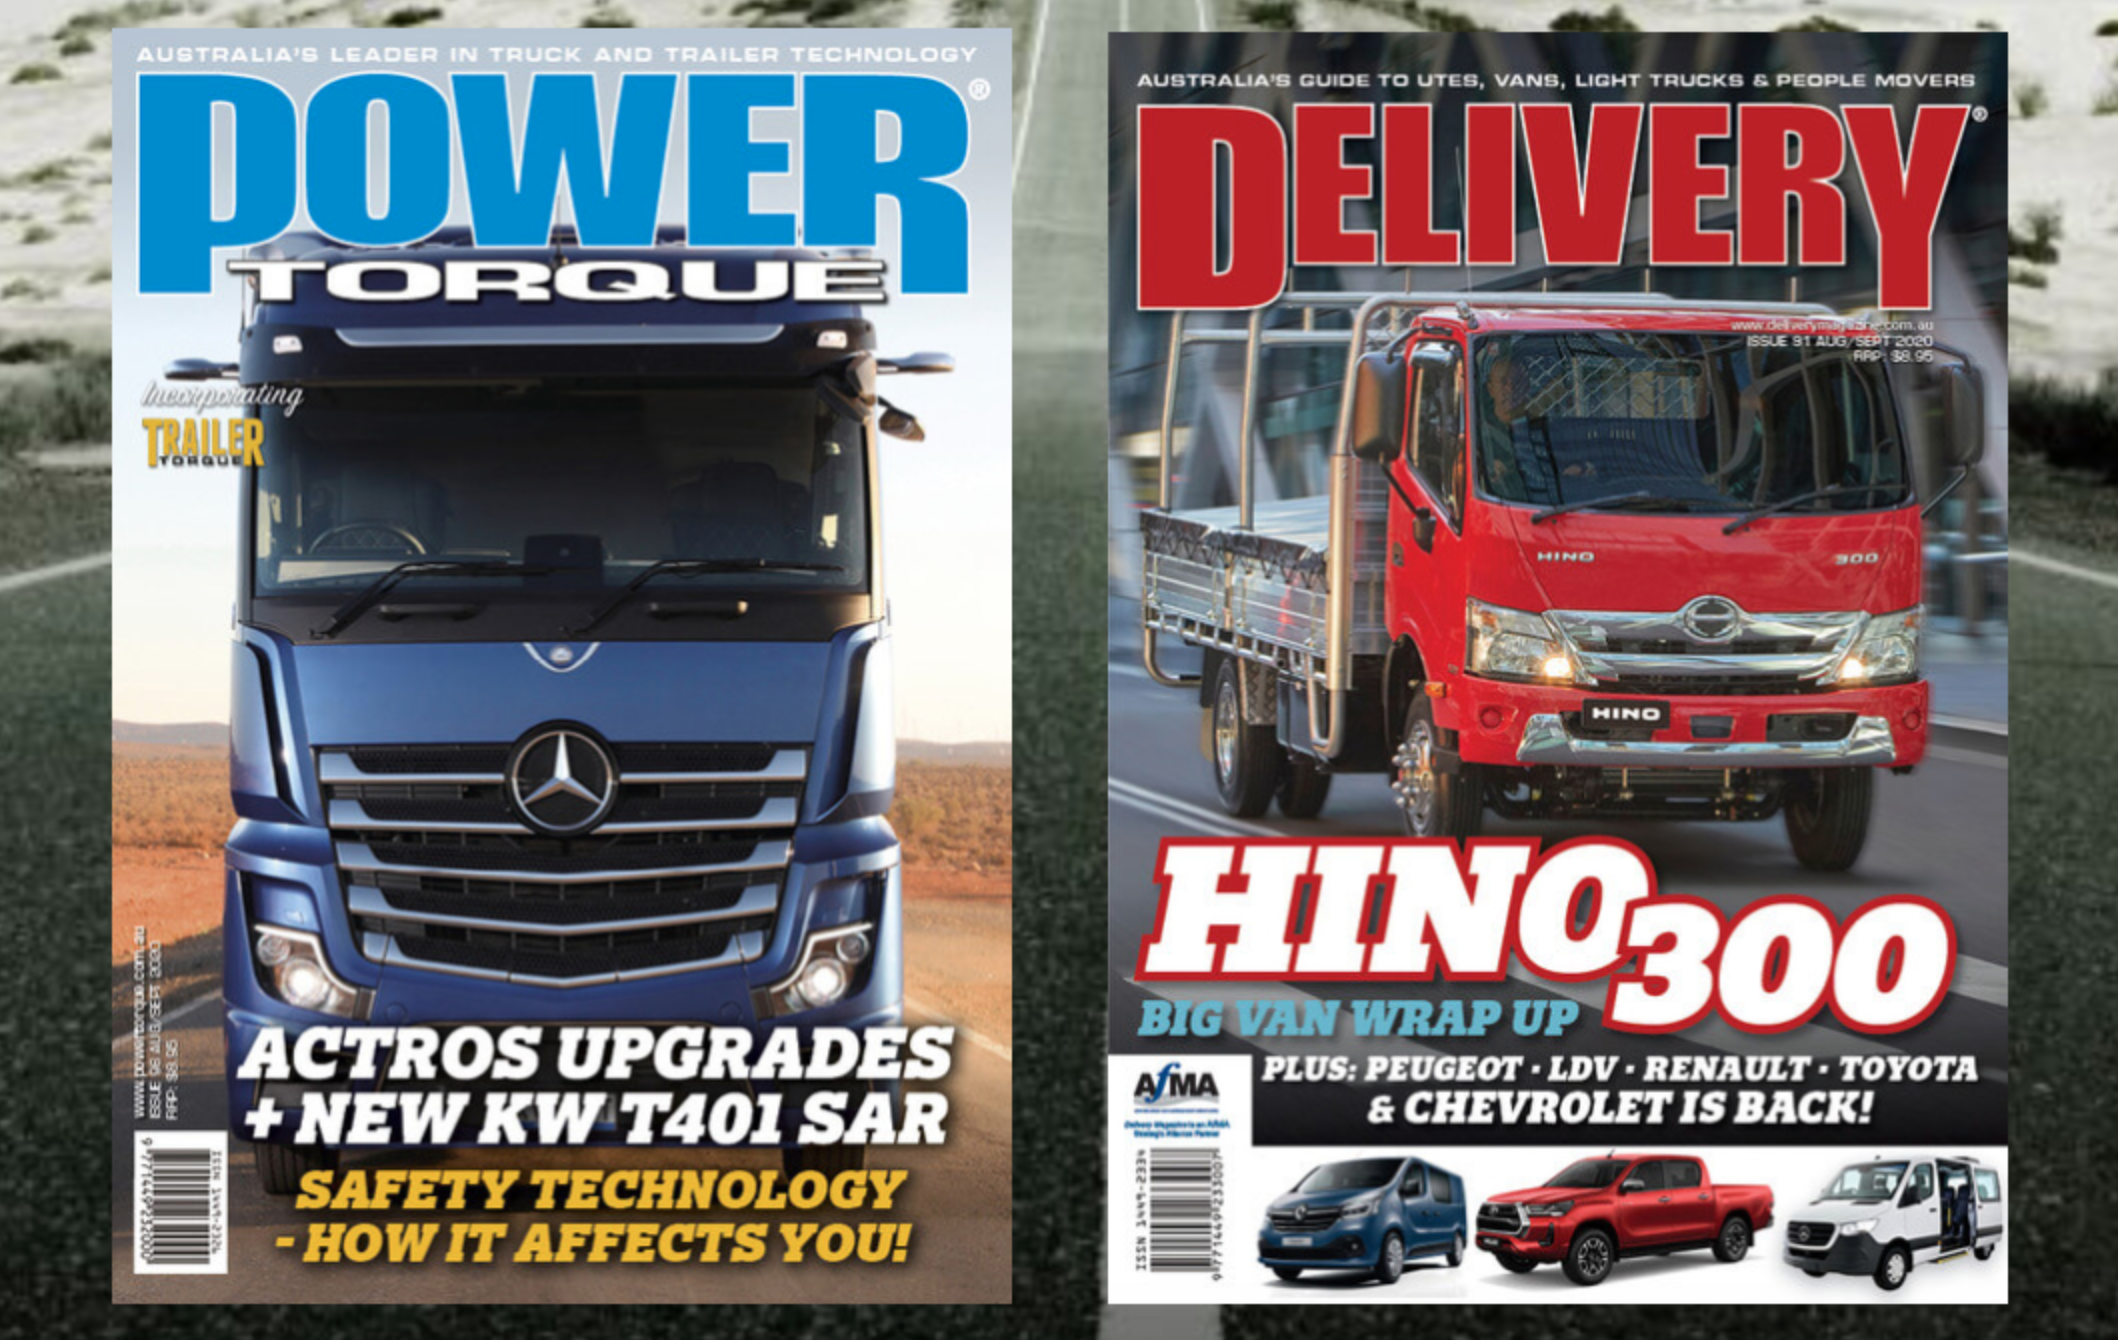 Powertorque Delivery Magazine Prime Creative Media